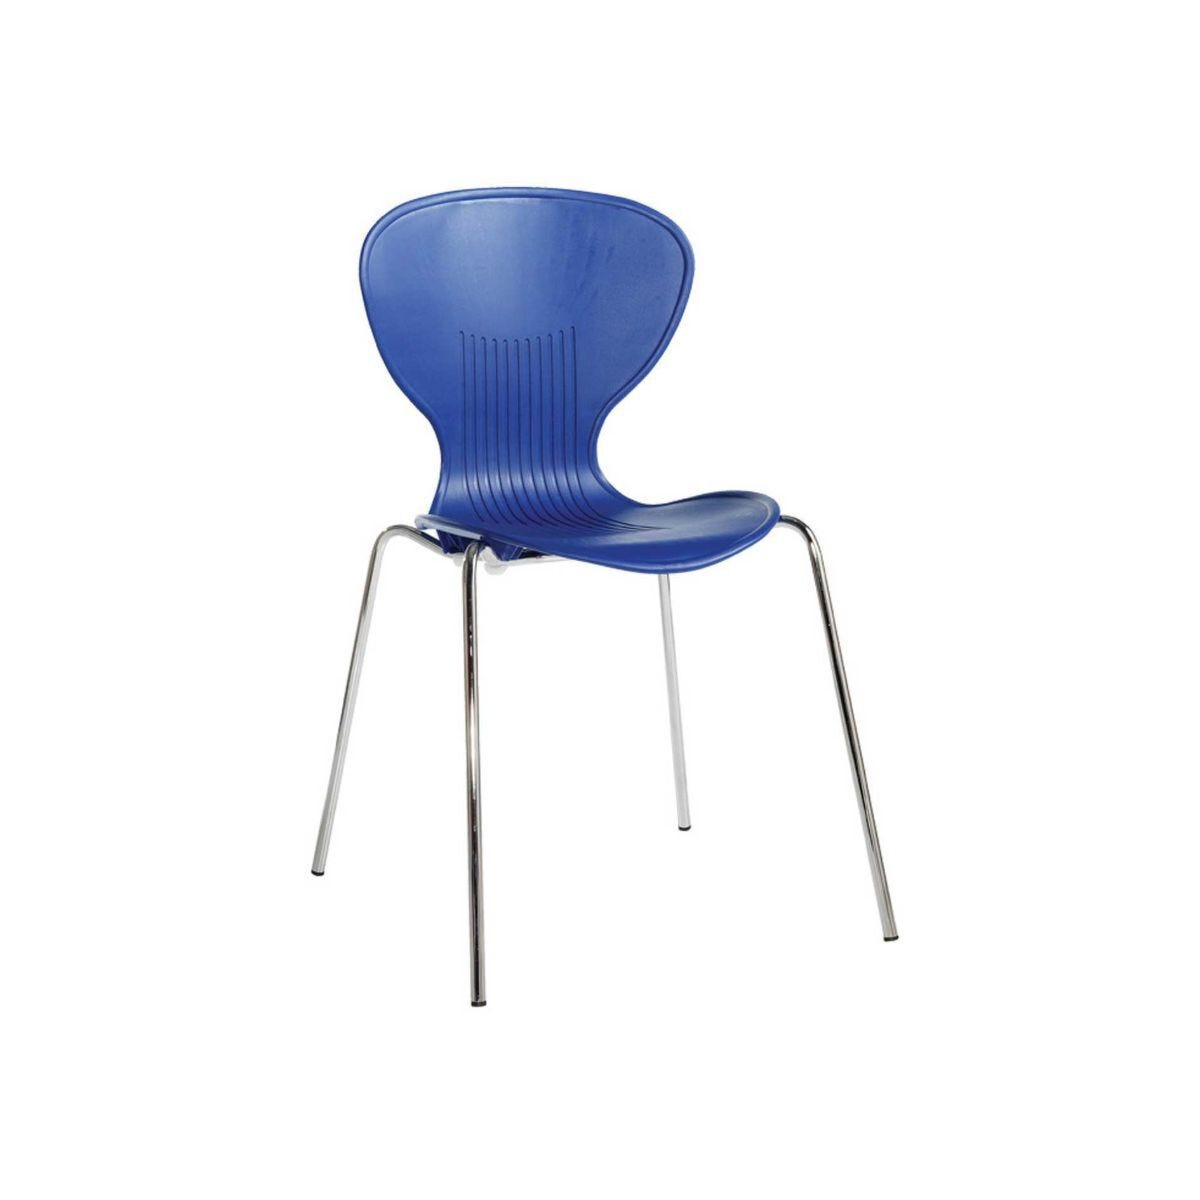 Contemporary Plastic Bistro Chair Pack of 4 Contoured Blue